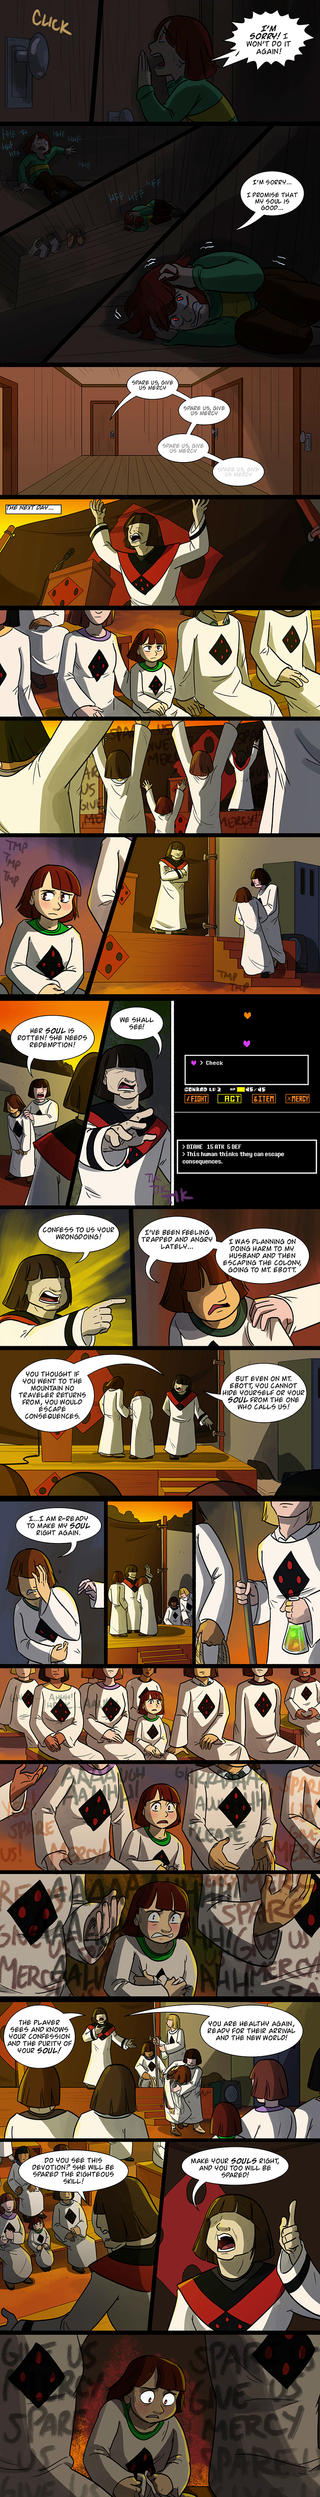 UT - Chara Origins - page 6 by LynxGriffin